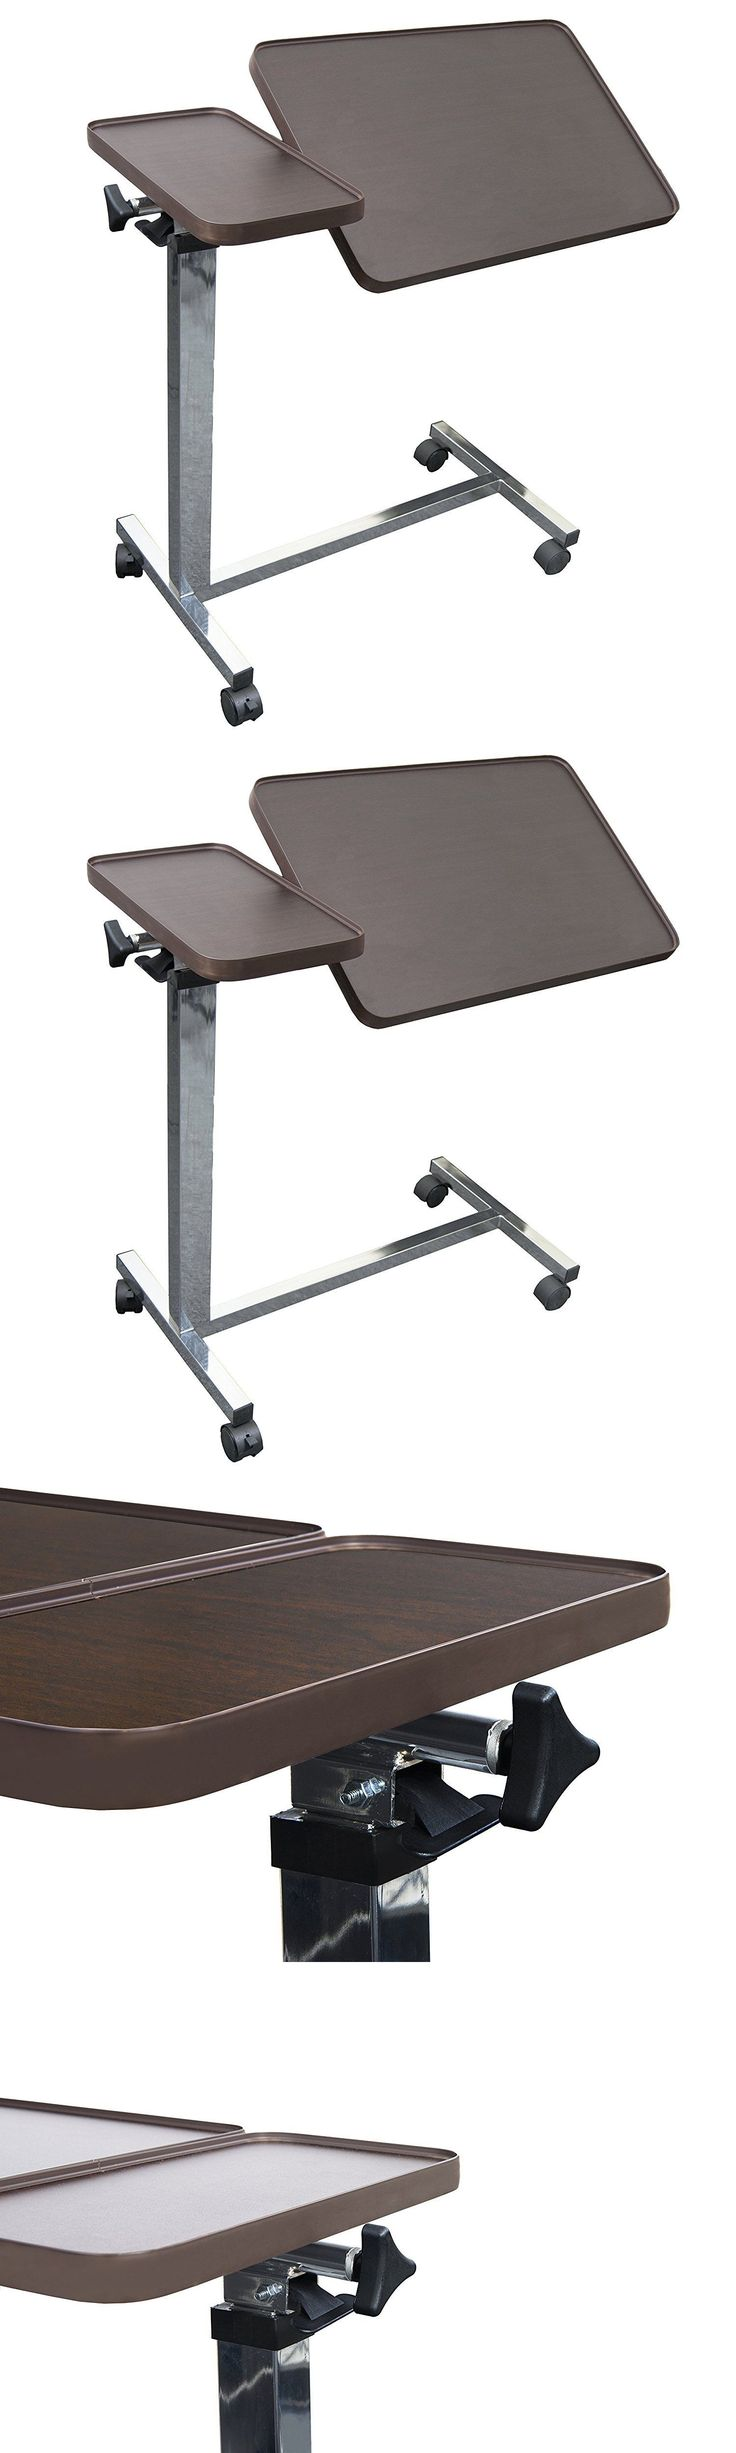 Overbed table food tray non tilt top bed hospital adjustable rolling - Bed And Chair Tables Eva Medical Adjustable Tilt Top Overbed Bedside Table For Home And